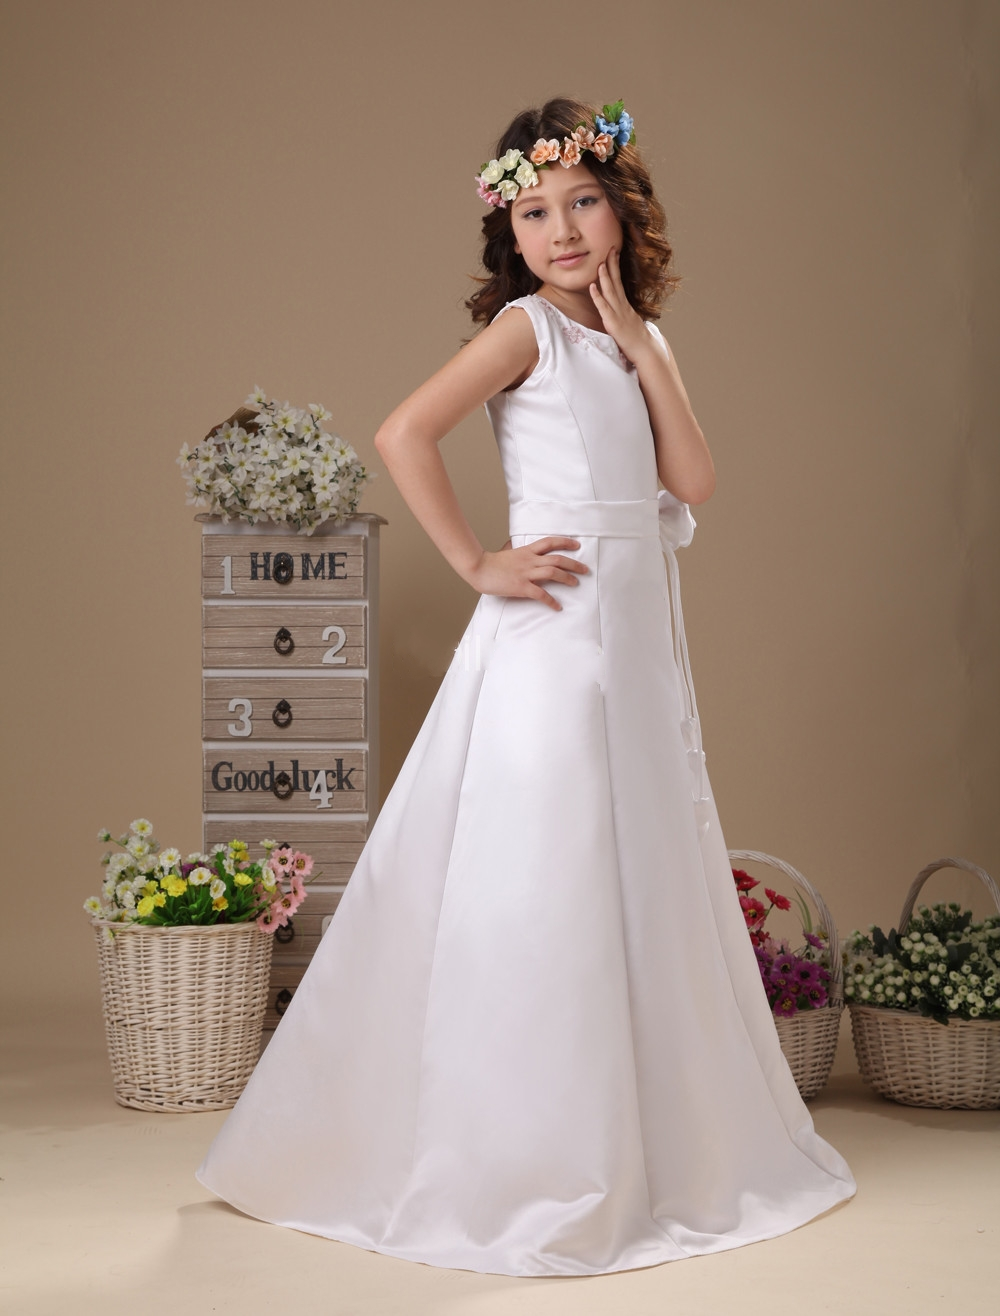 2019 Beautiful Custom Made Simple White Flower Girl Dresses First Communion Dresses Vestido Para Daminha With Sash